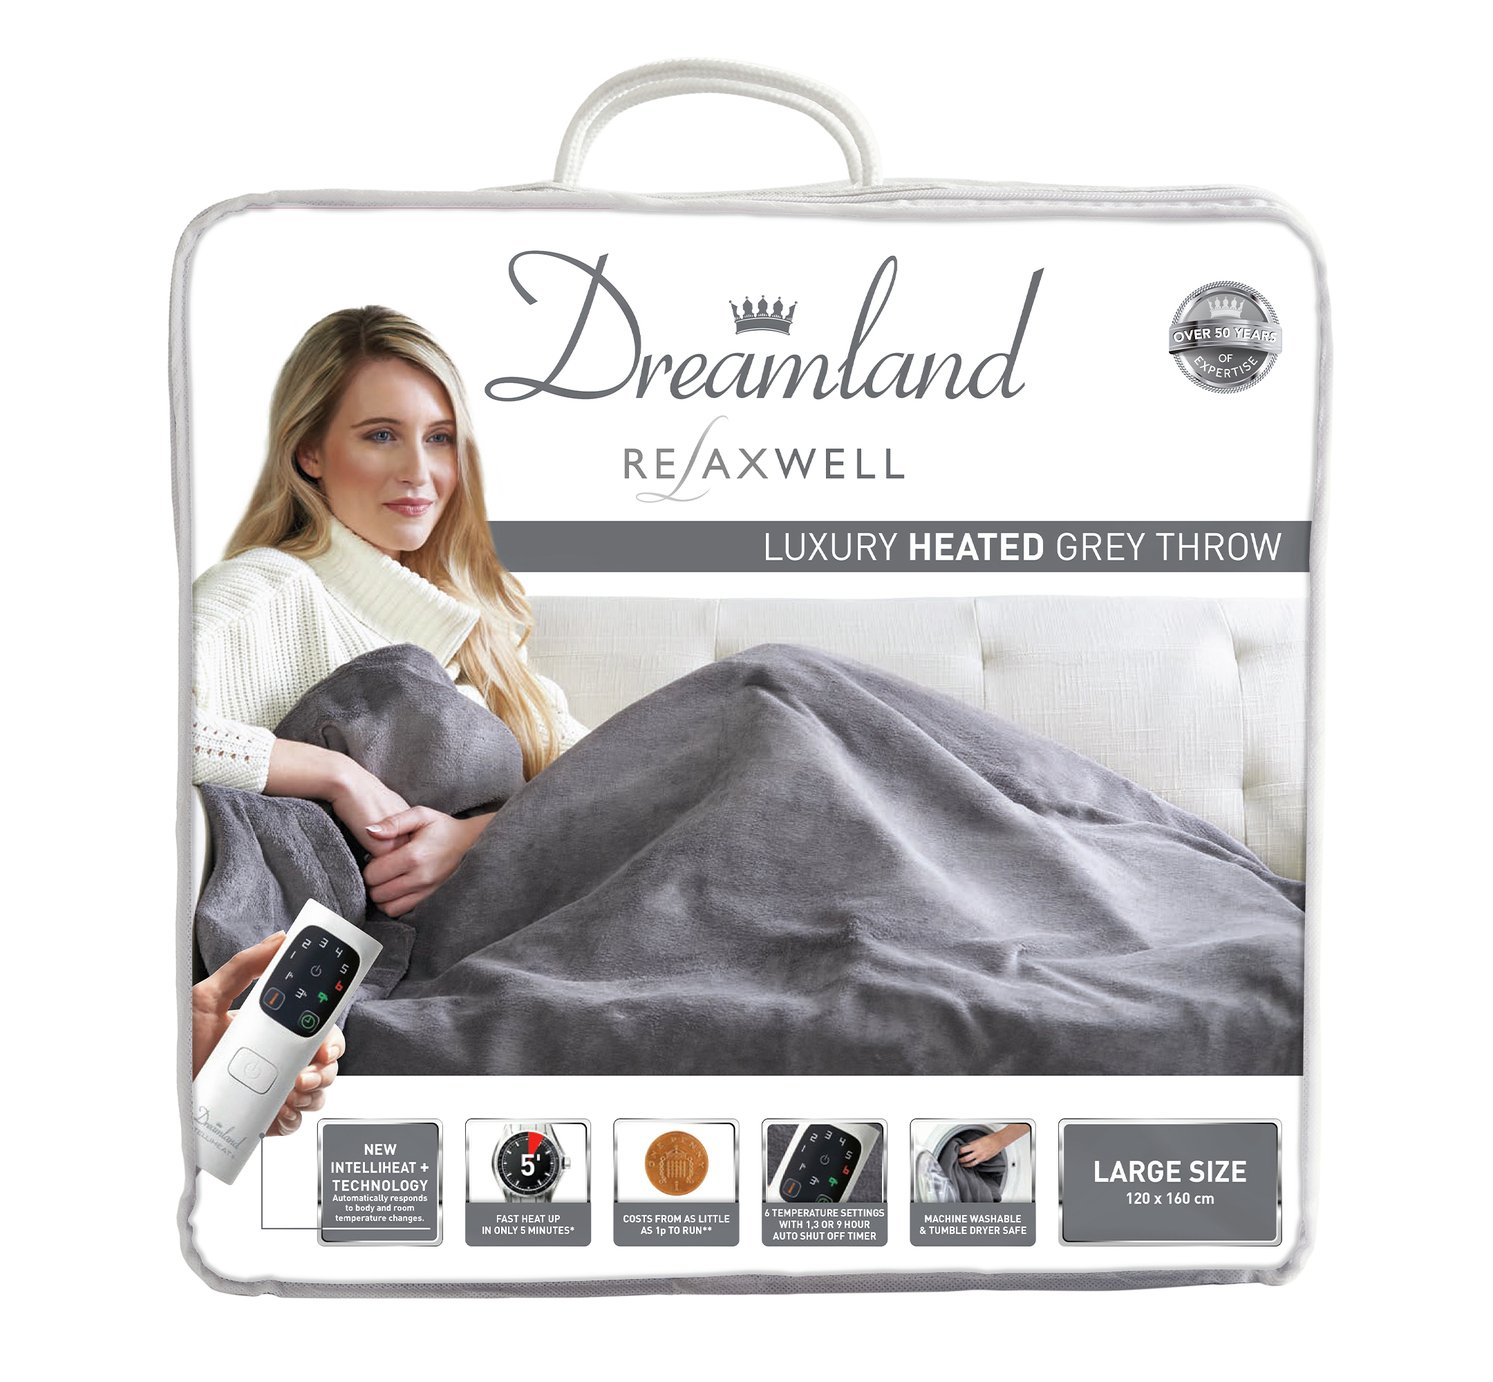 relaxwell by dreamland luxury velvety heated throw  grey